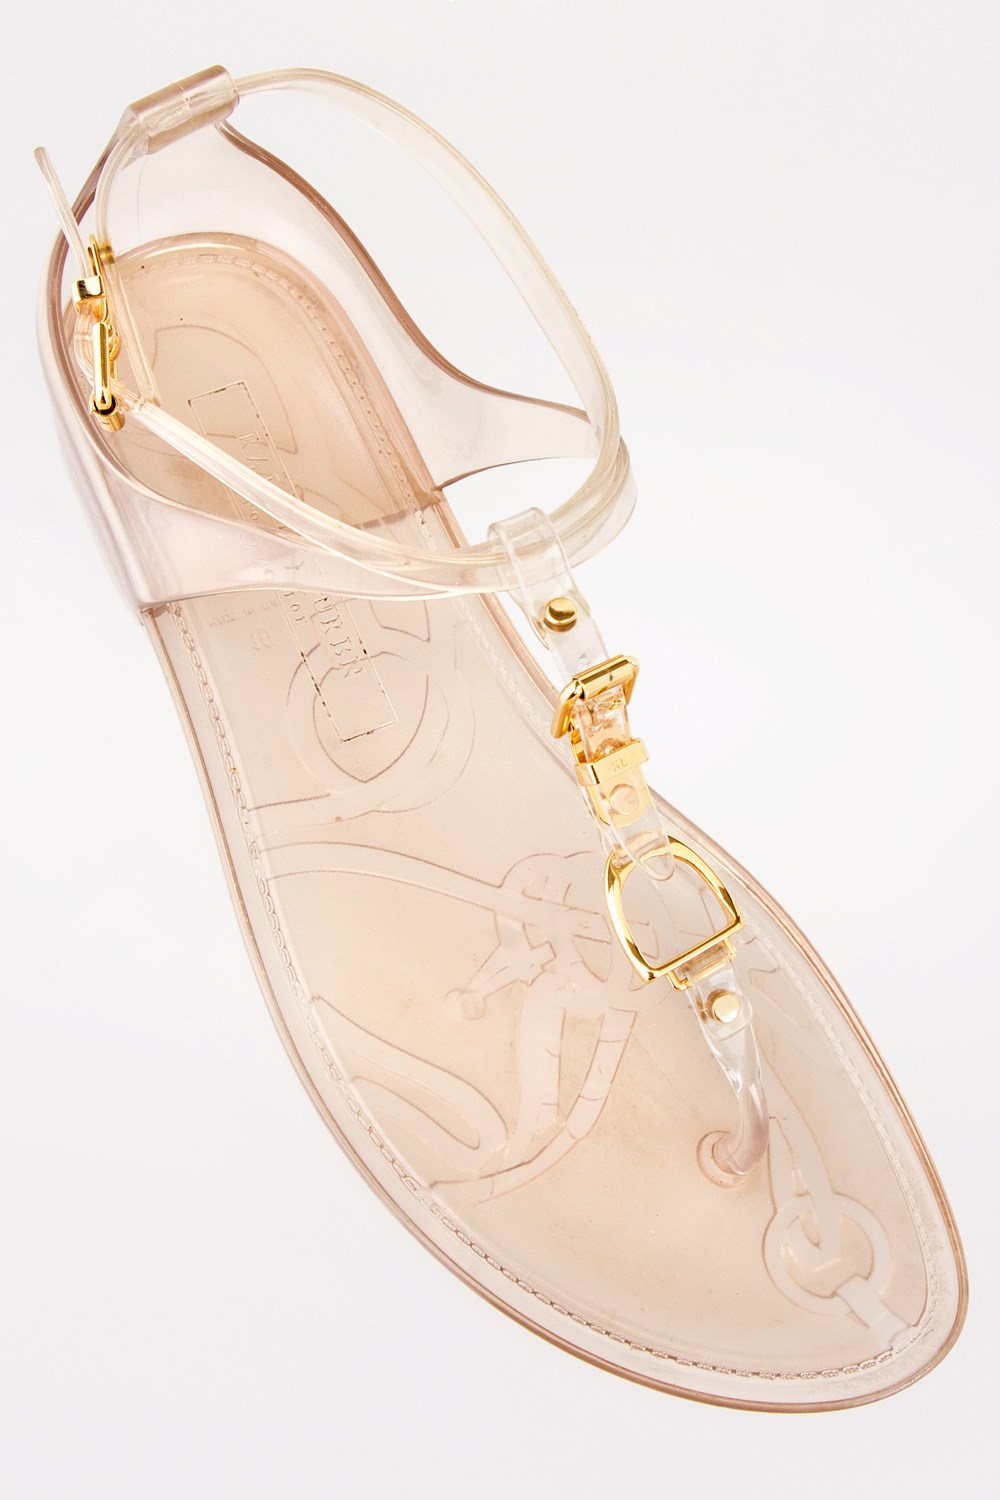 f43bb64fde8f Karly Clear Jelly Sandals   Size  10B(40) - Fit  True to size ...